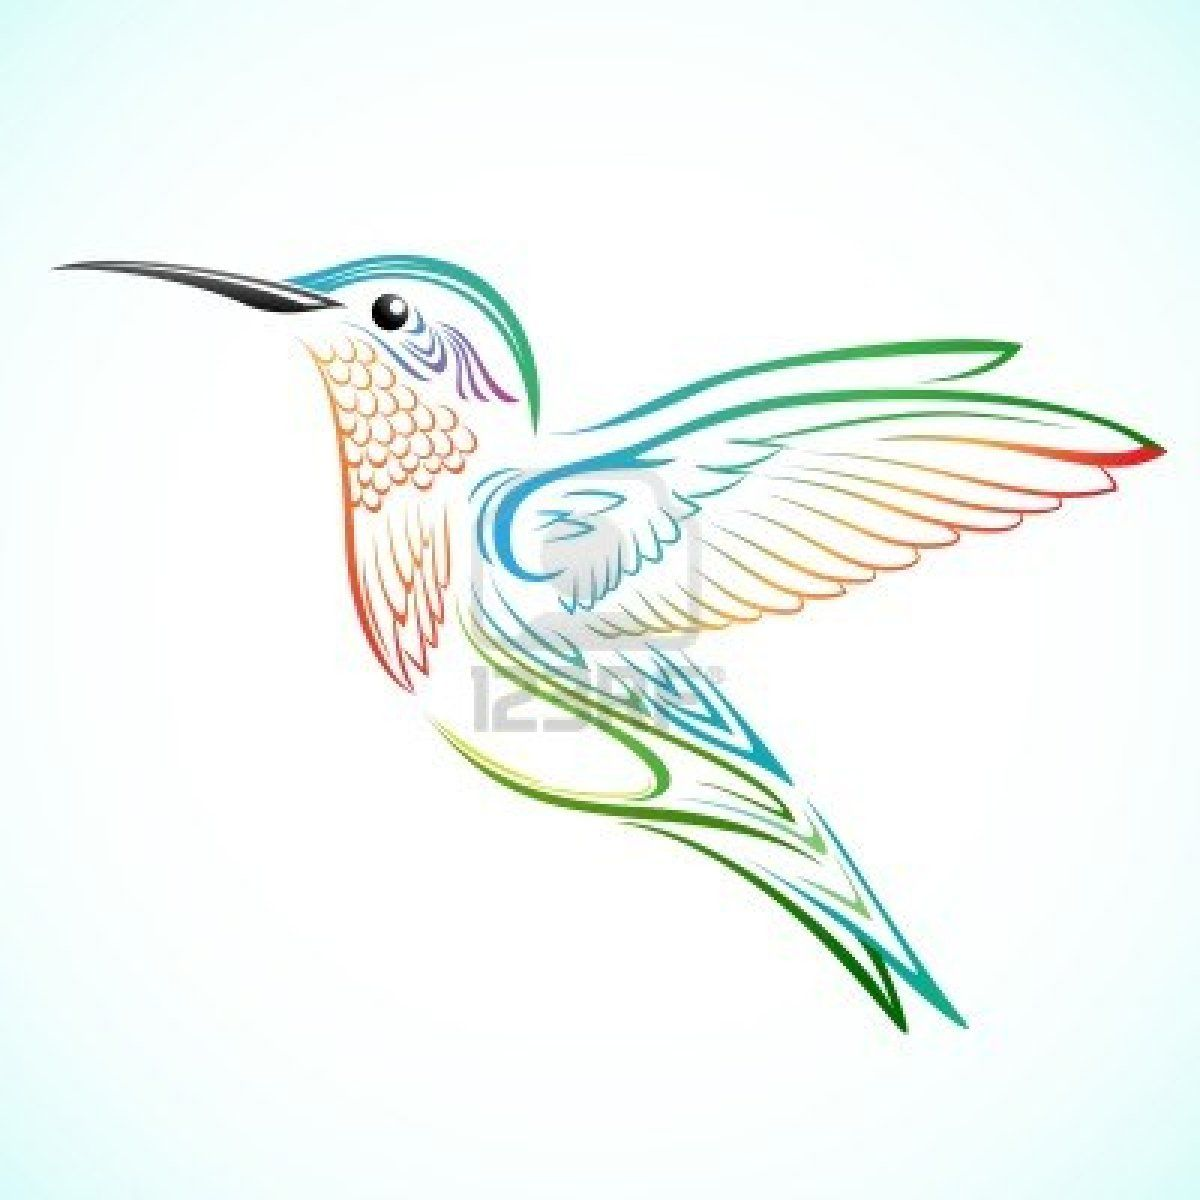 Image Detail For Colorful Hummingbird Royalty Free Cliparts